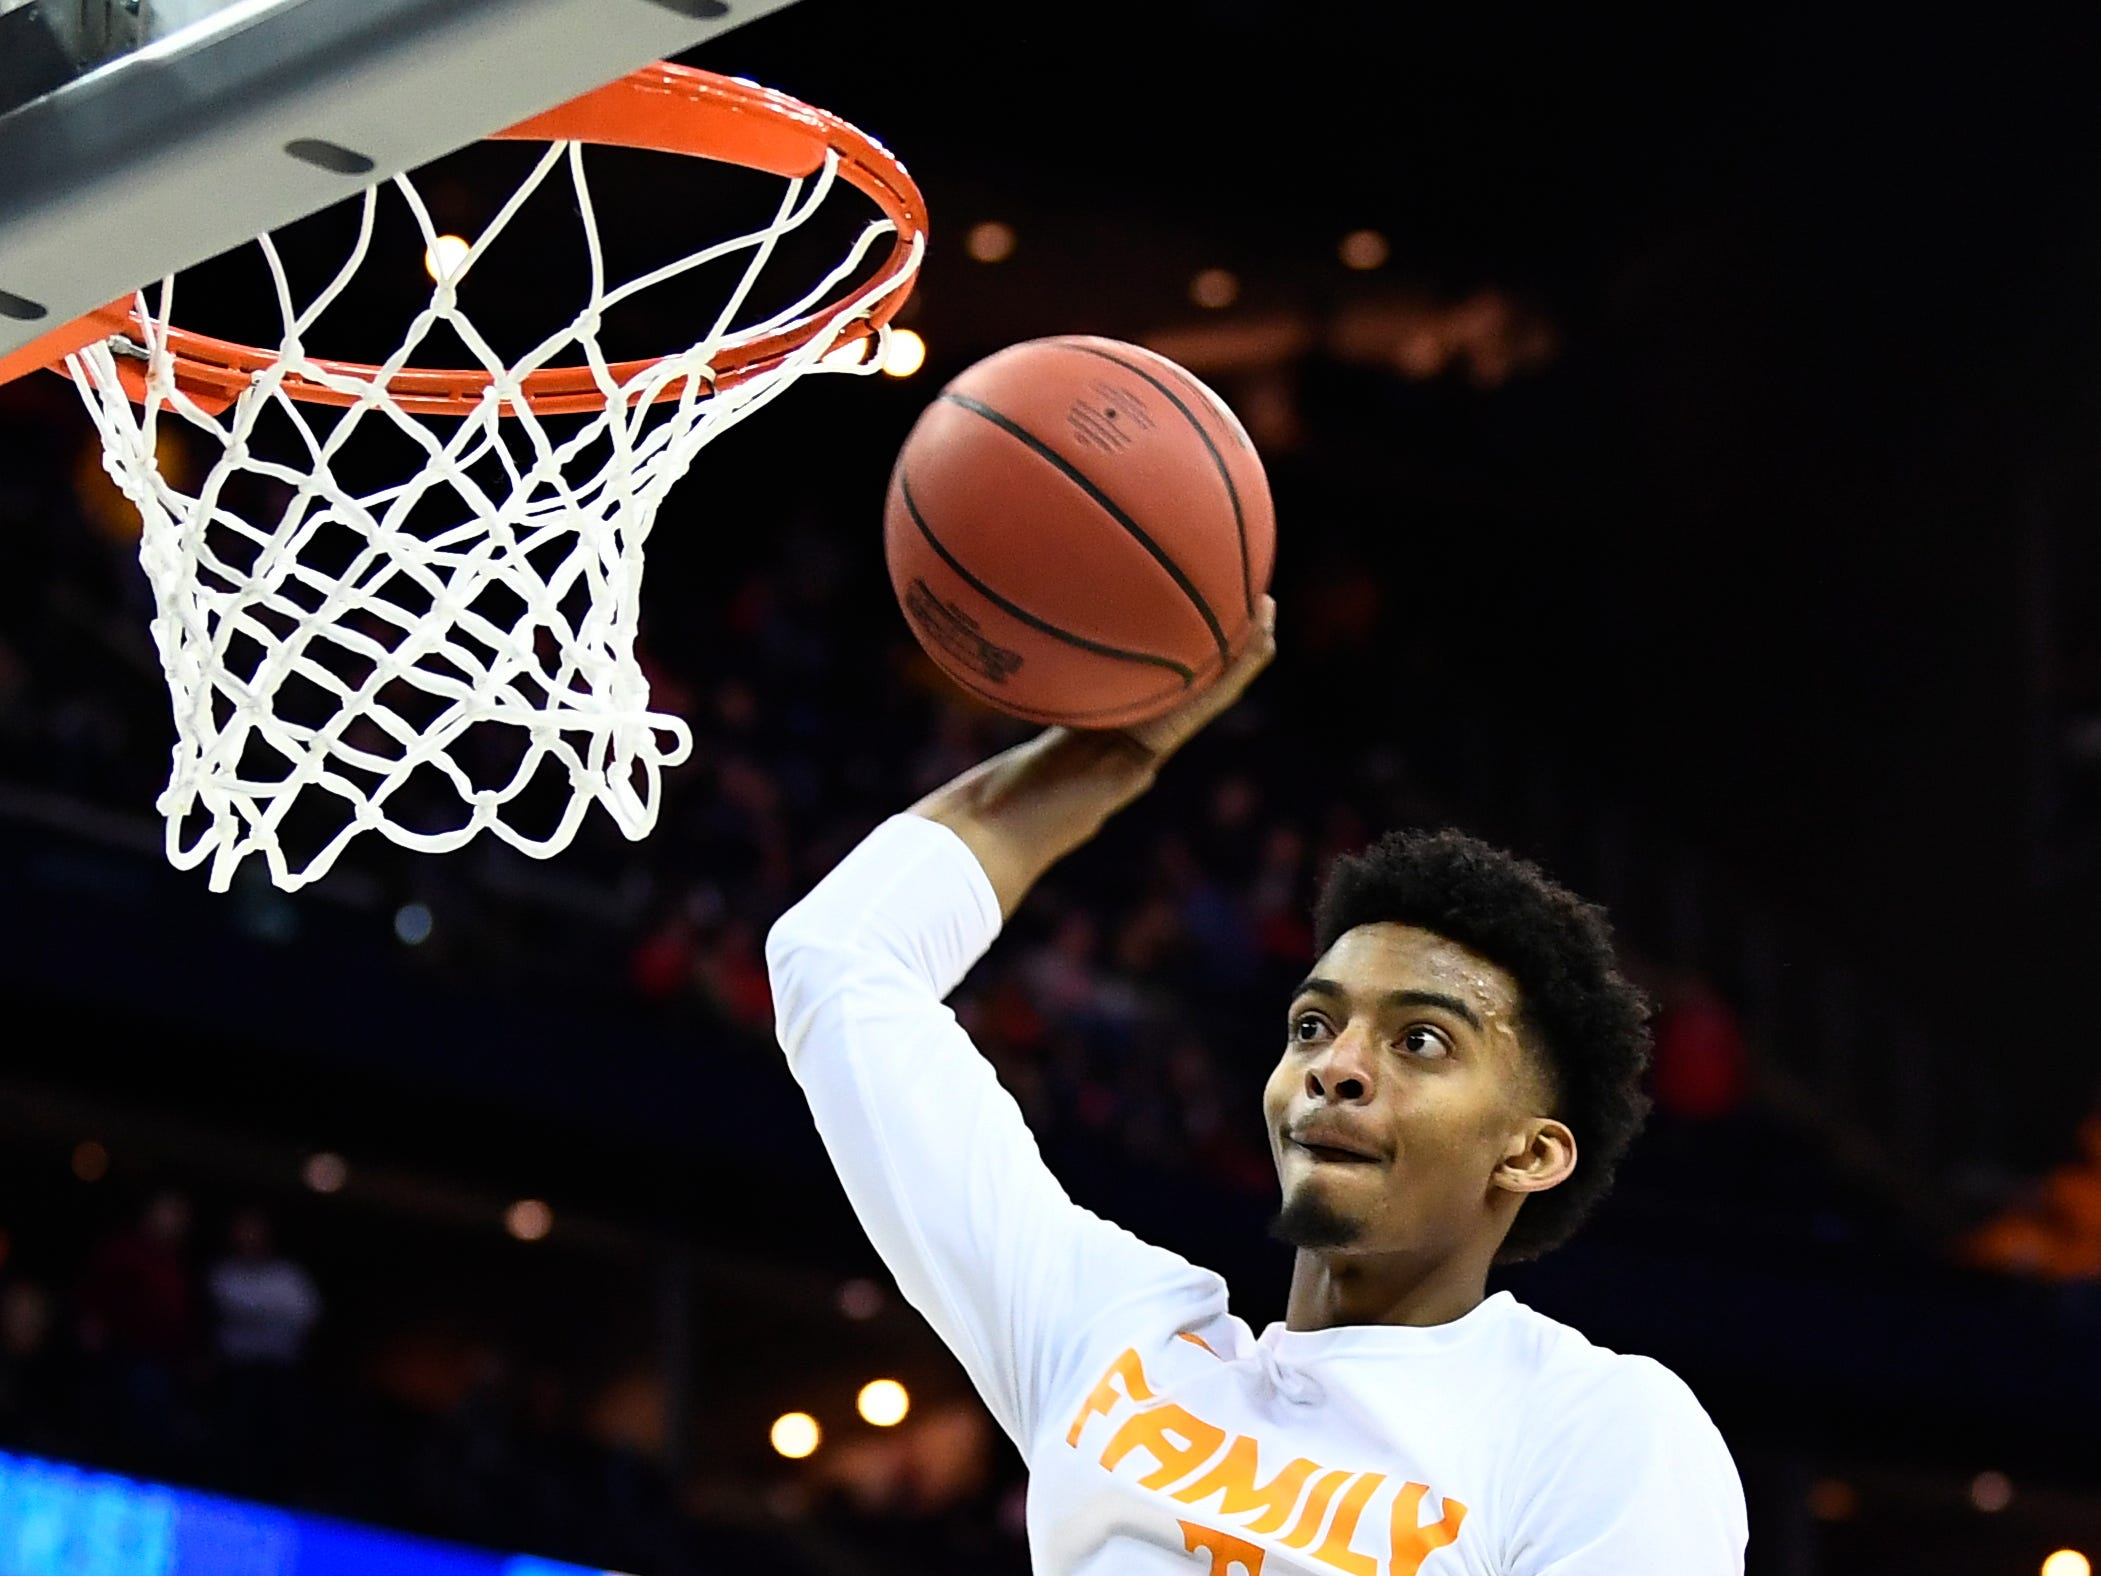 Tennessee guard Jalen Johnson (13) goes to the basket during warmups before the Tennessee VolunteersÕ basketball game against the Colgate Raiders in the first round of the NCAA Tournament at Nationwide Arena in Columbus, Ohio, on Friday, March 22, 2019.